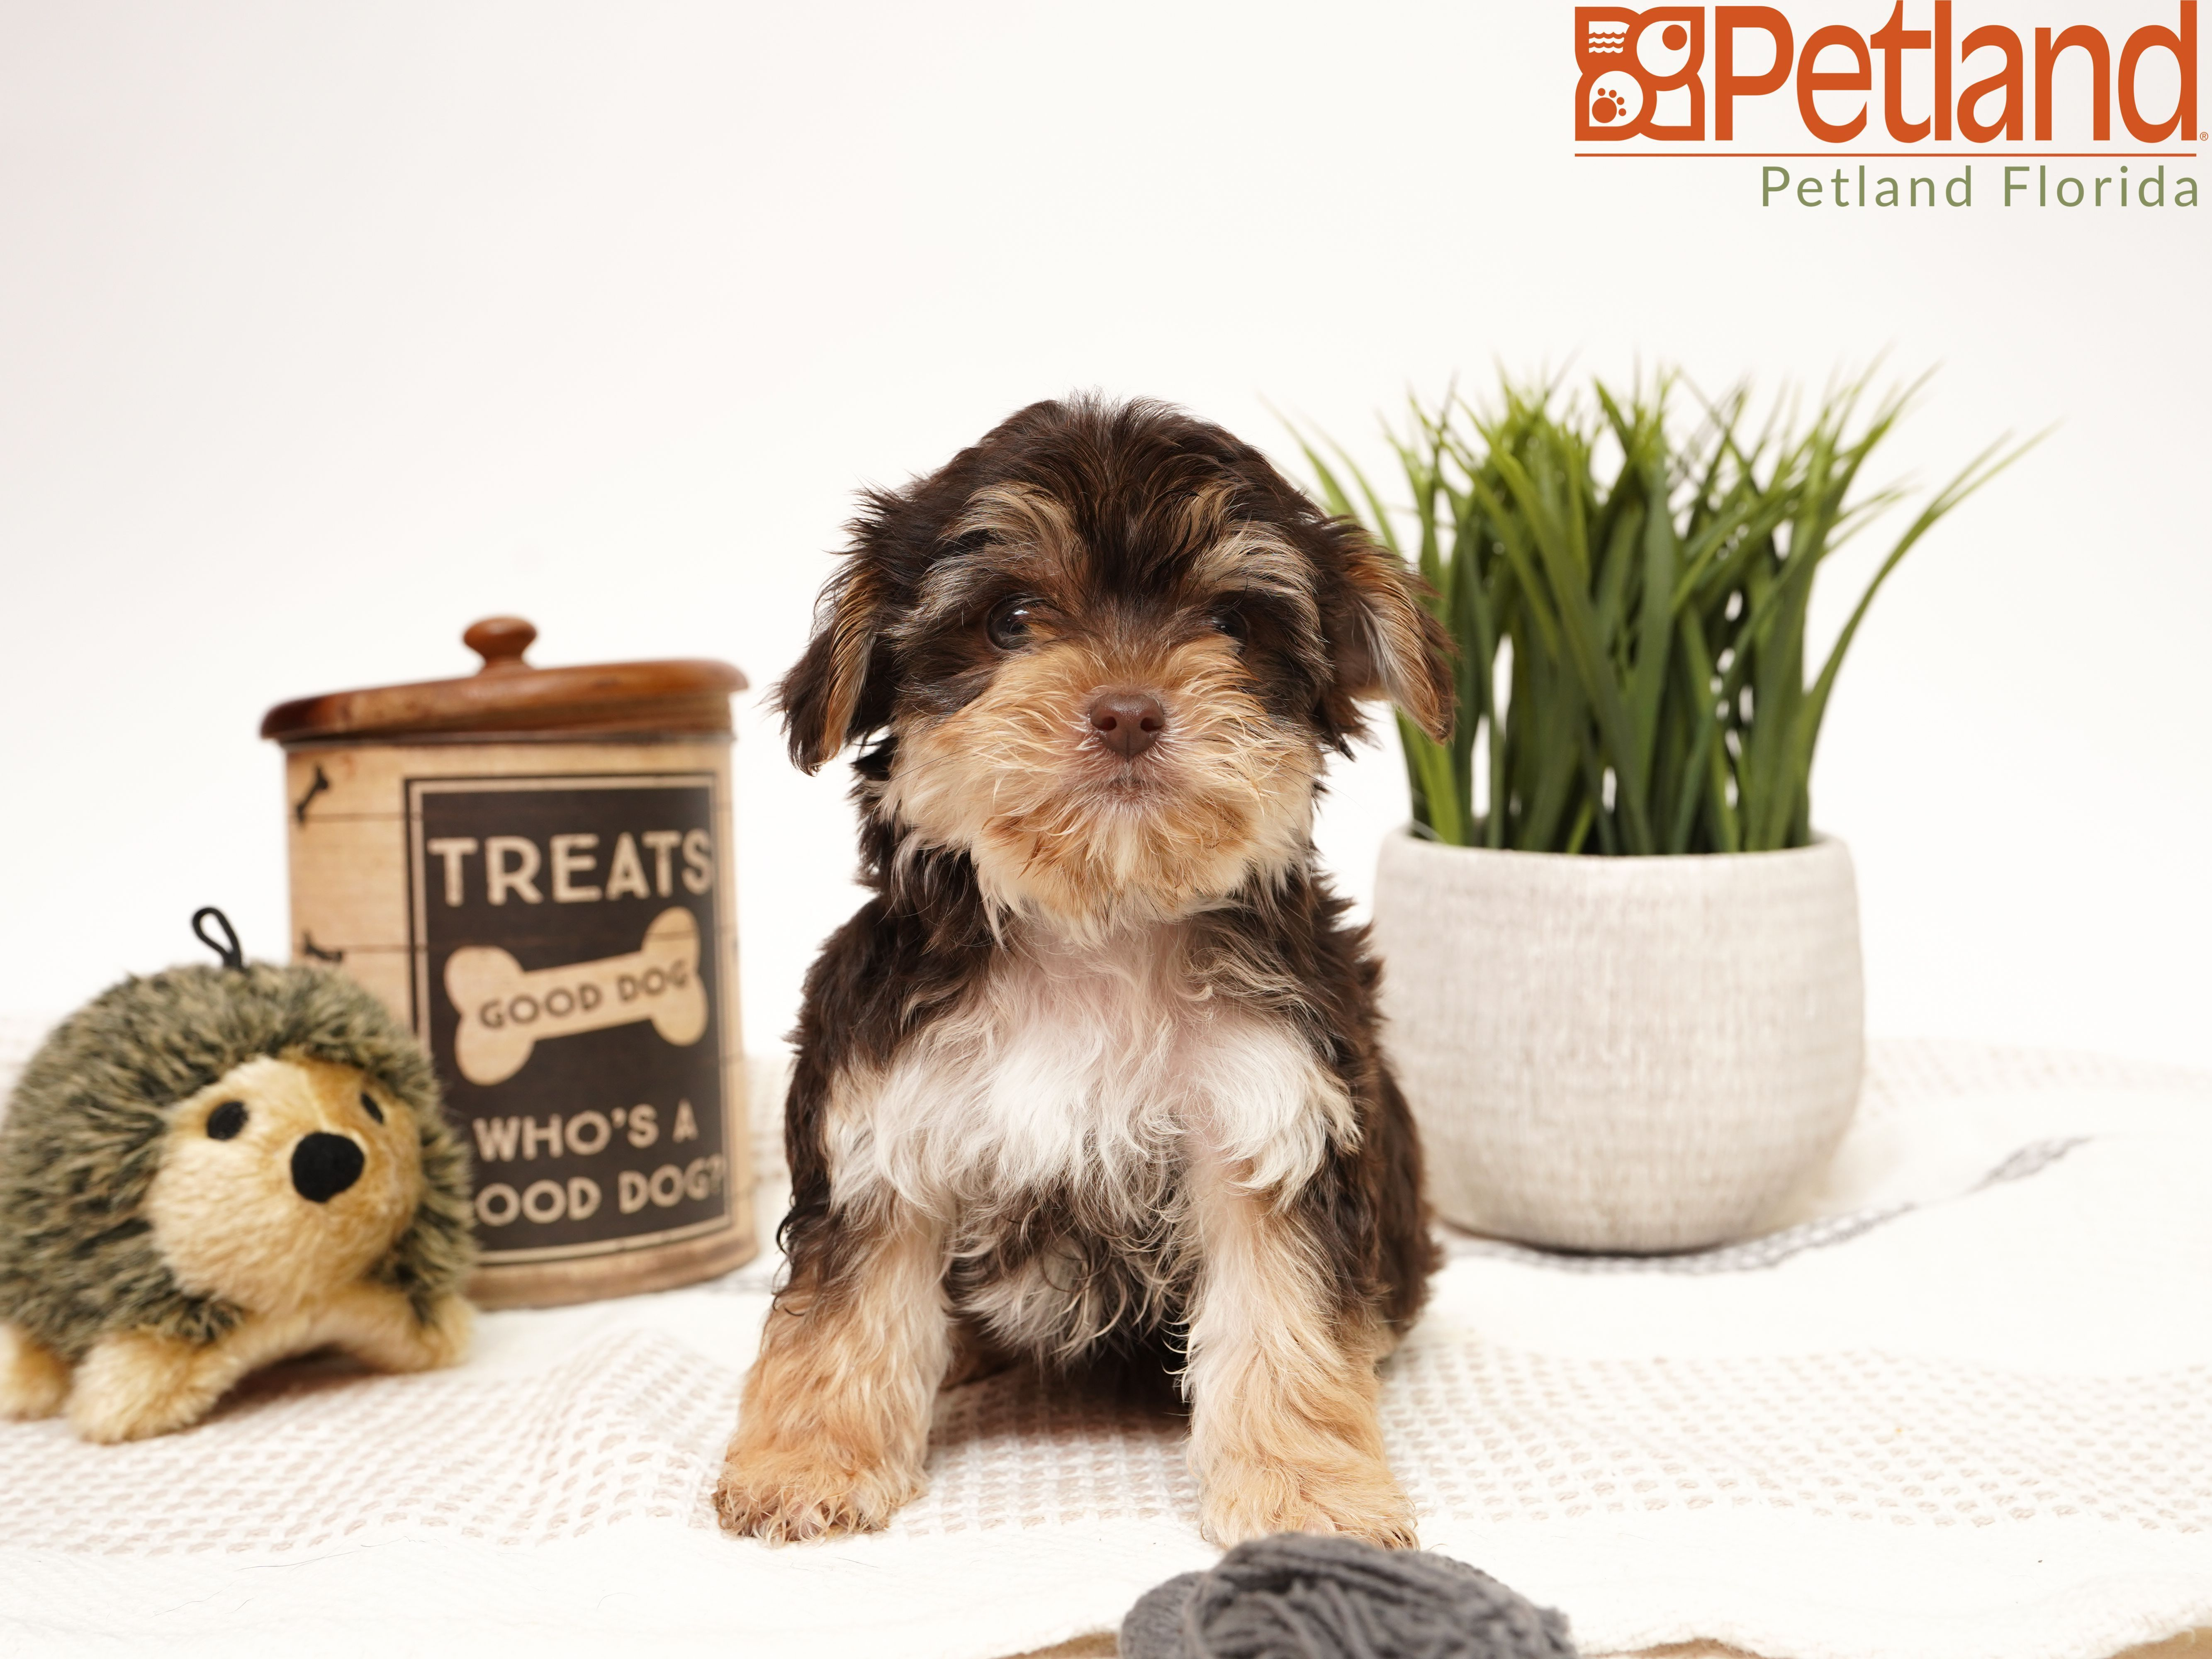 Petland Florida Has Morkie Puppies For Sale Check Out All Our Available Puppies Morkie Petlandkendall Petland Petl Puppy Friends Morkie Puppies Puppies